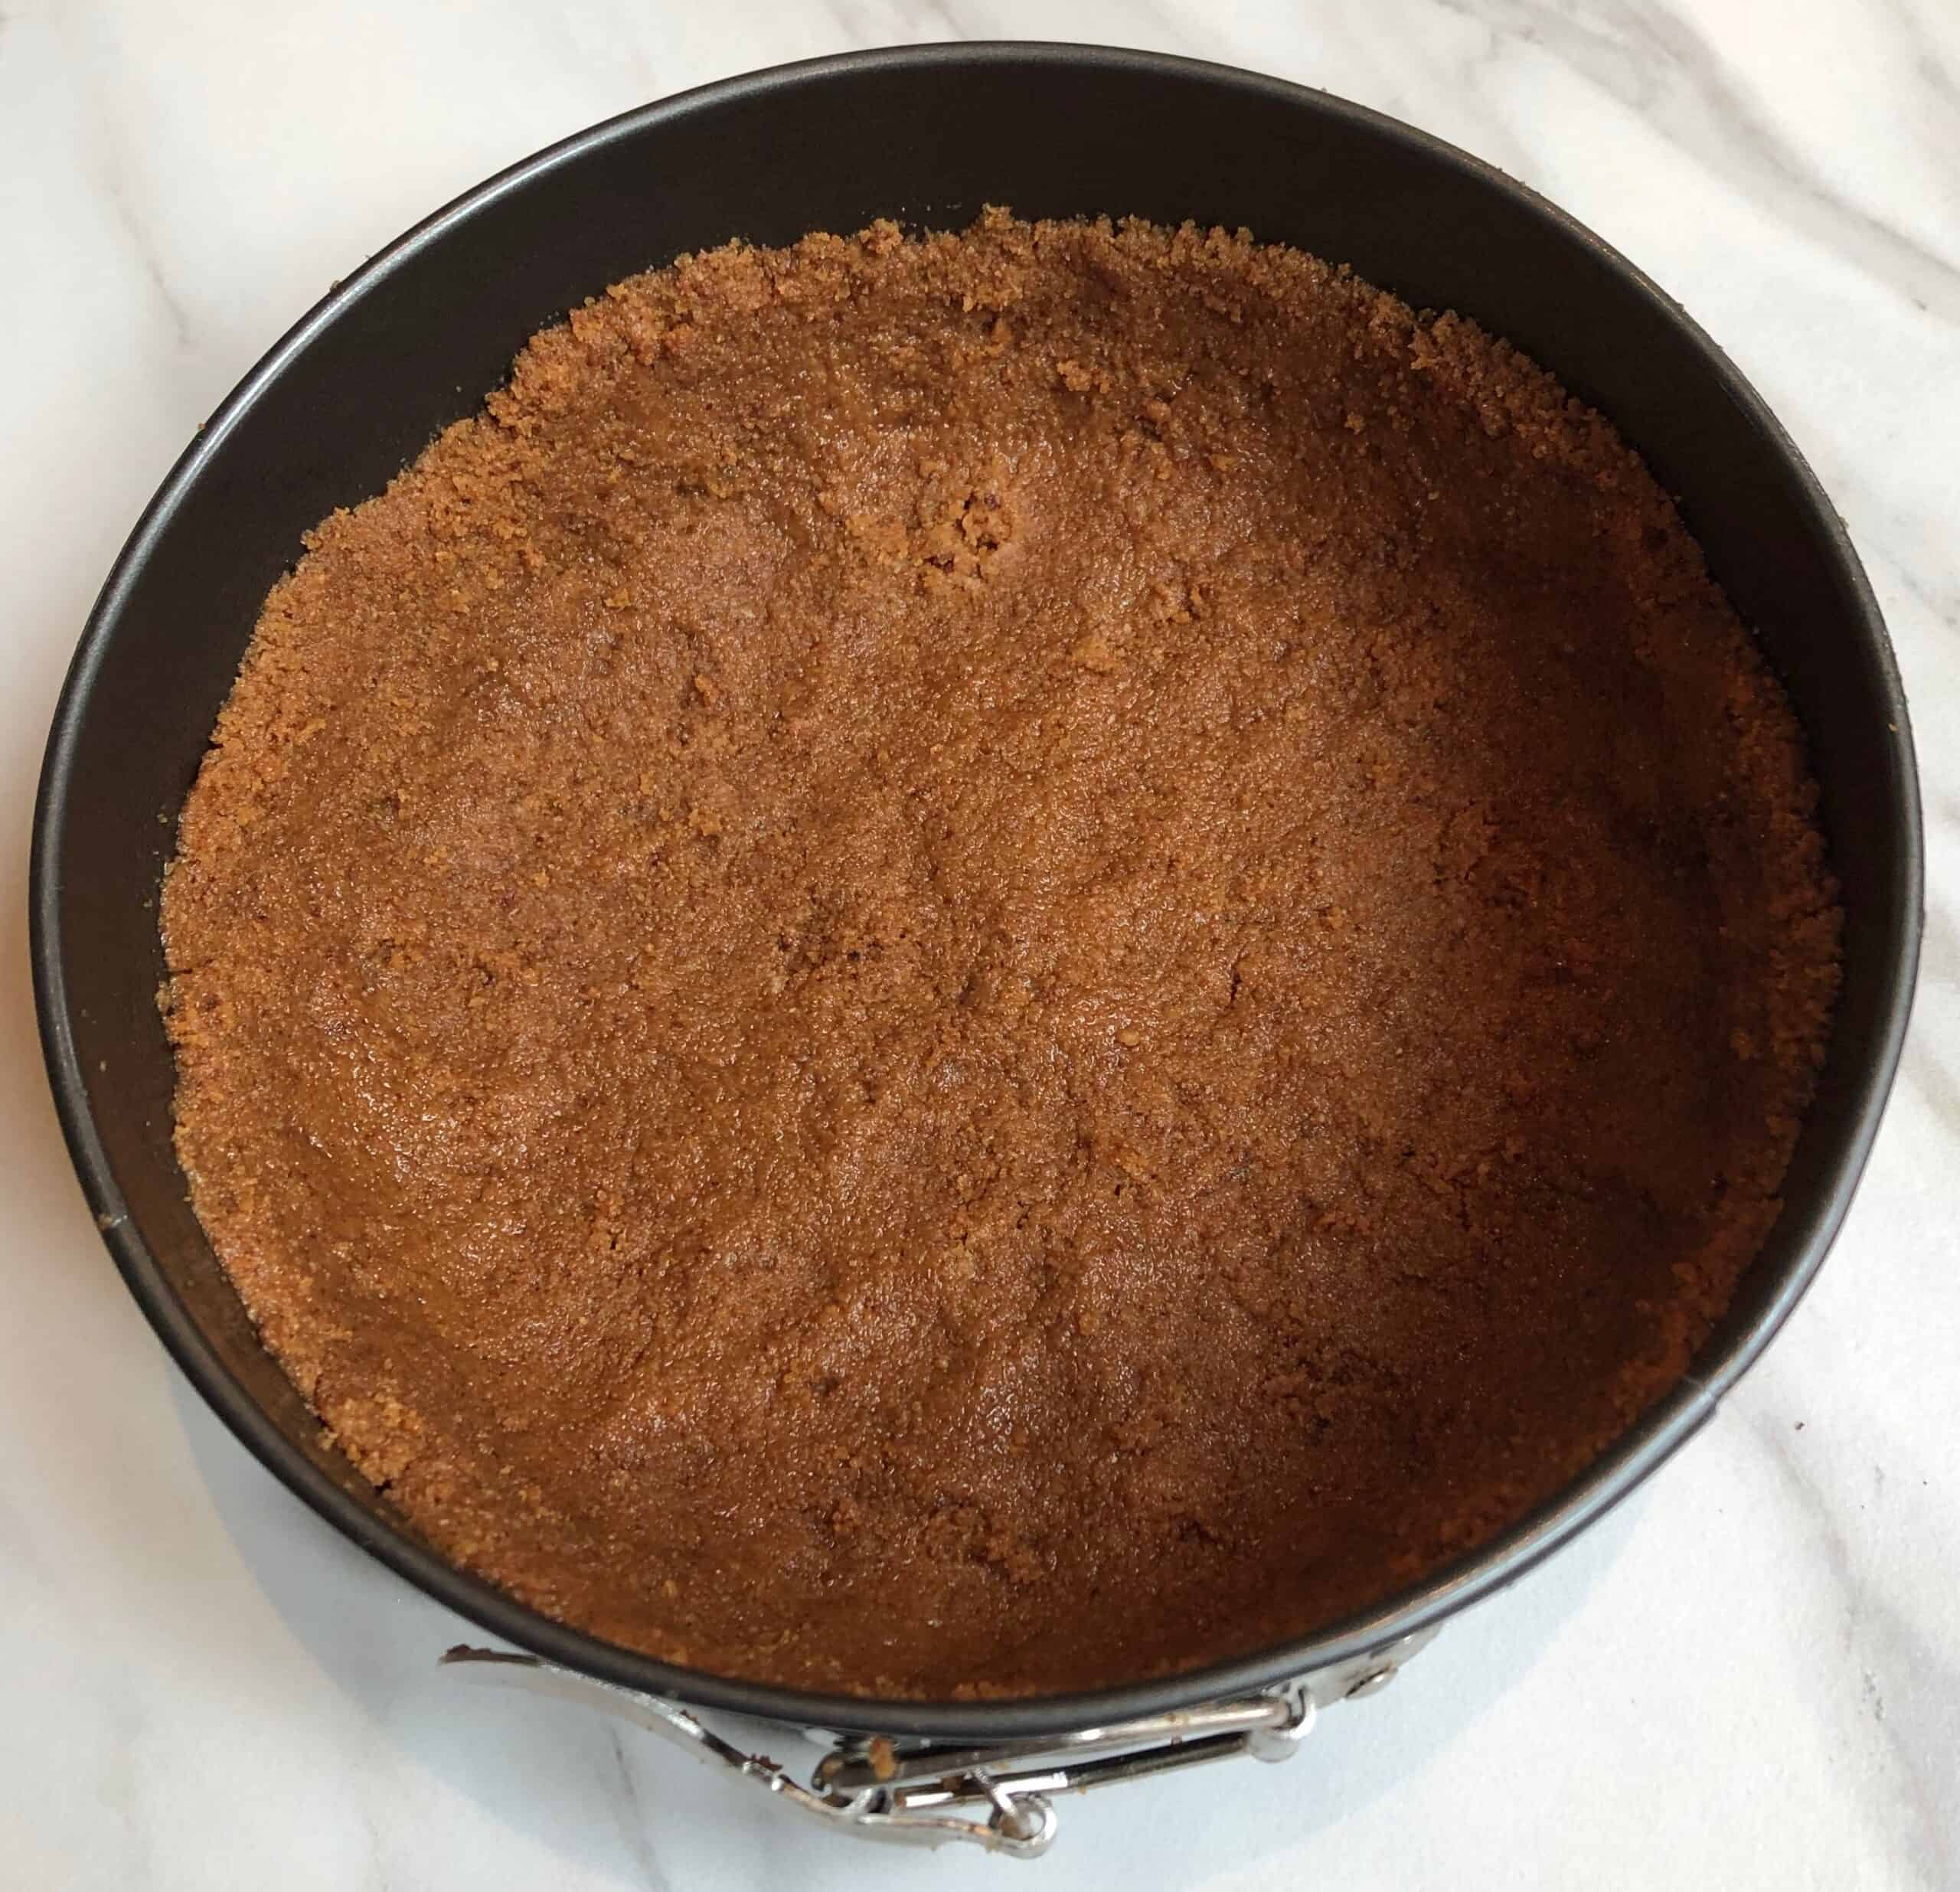 baked honey almond crust for lavender cheesecake